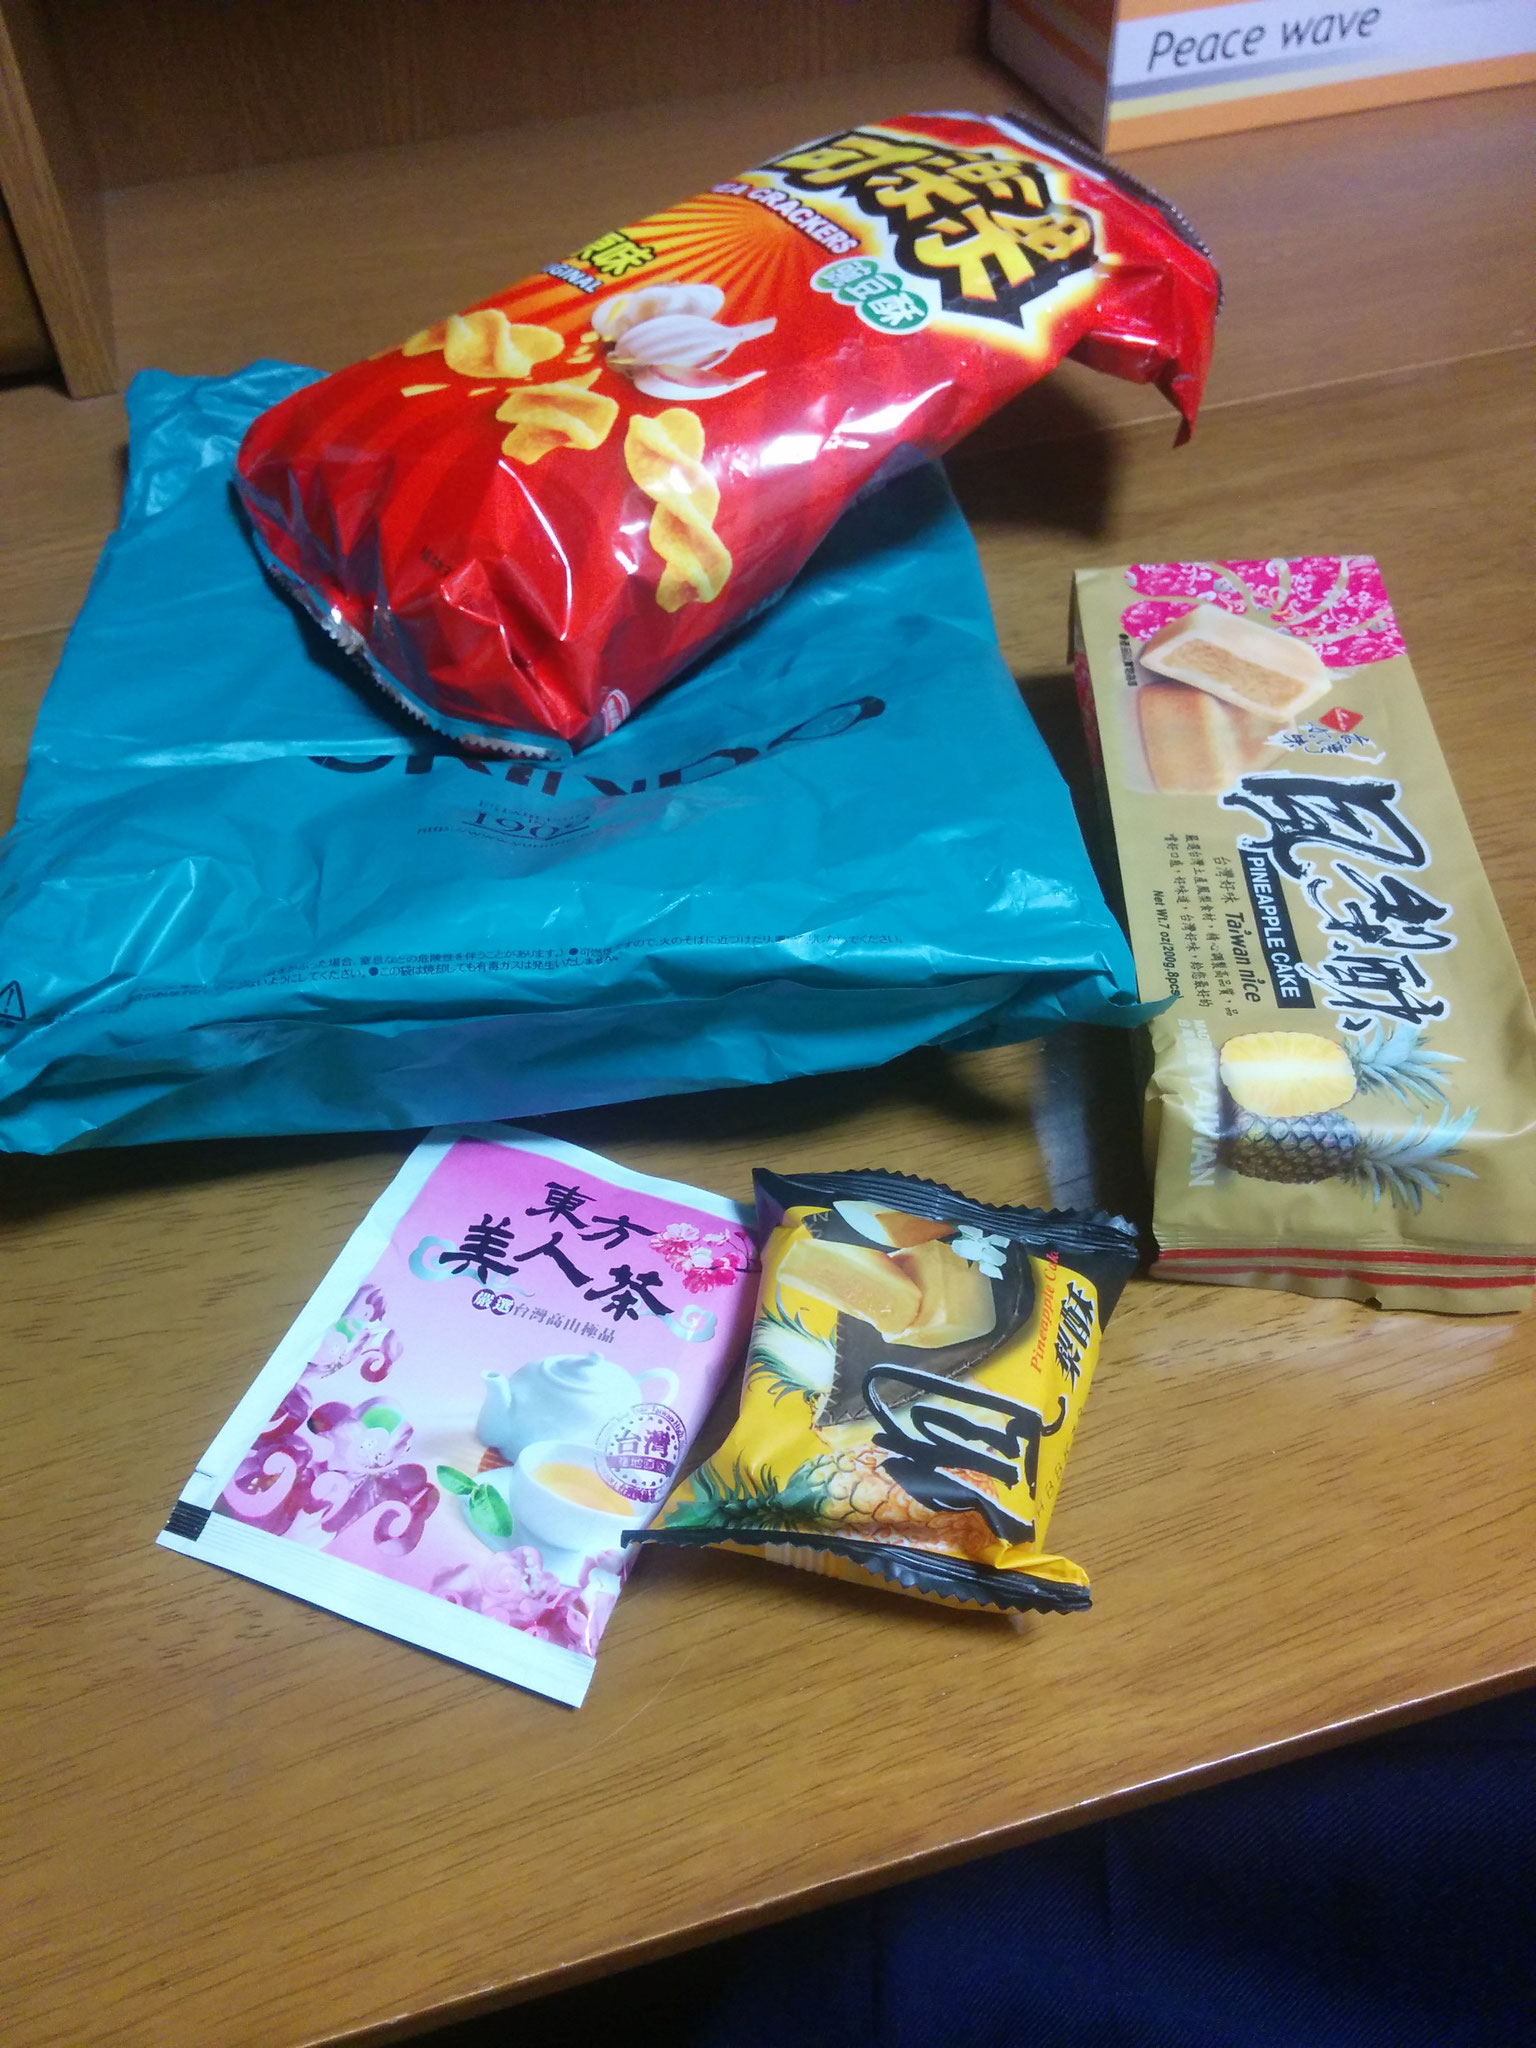 Souvenirs from my friends from the Taiwan trip